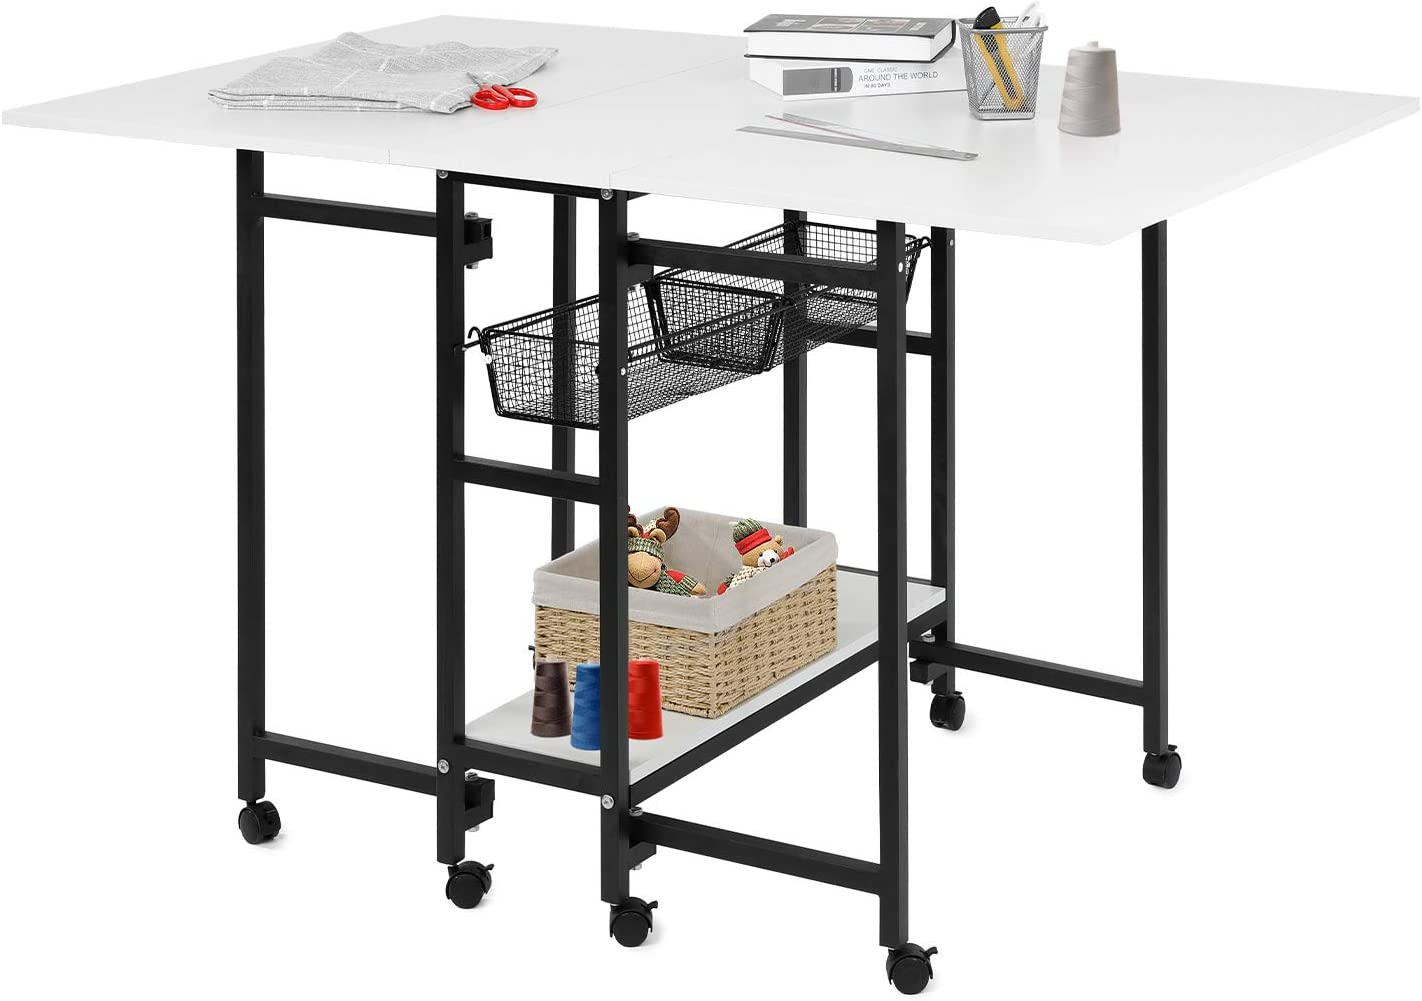 """HOMFY Foldable Craft Cutting Table for Adult Adjustable Home Hobby Table with Storage White 58.5/""""35.4/"""""""